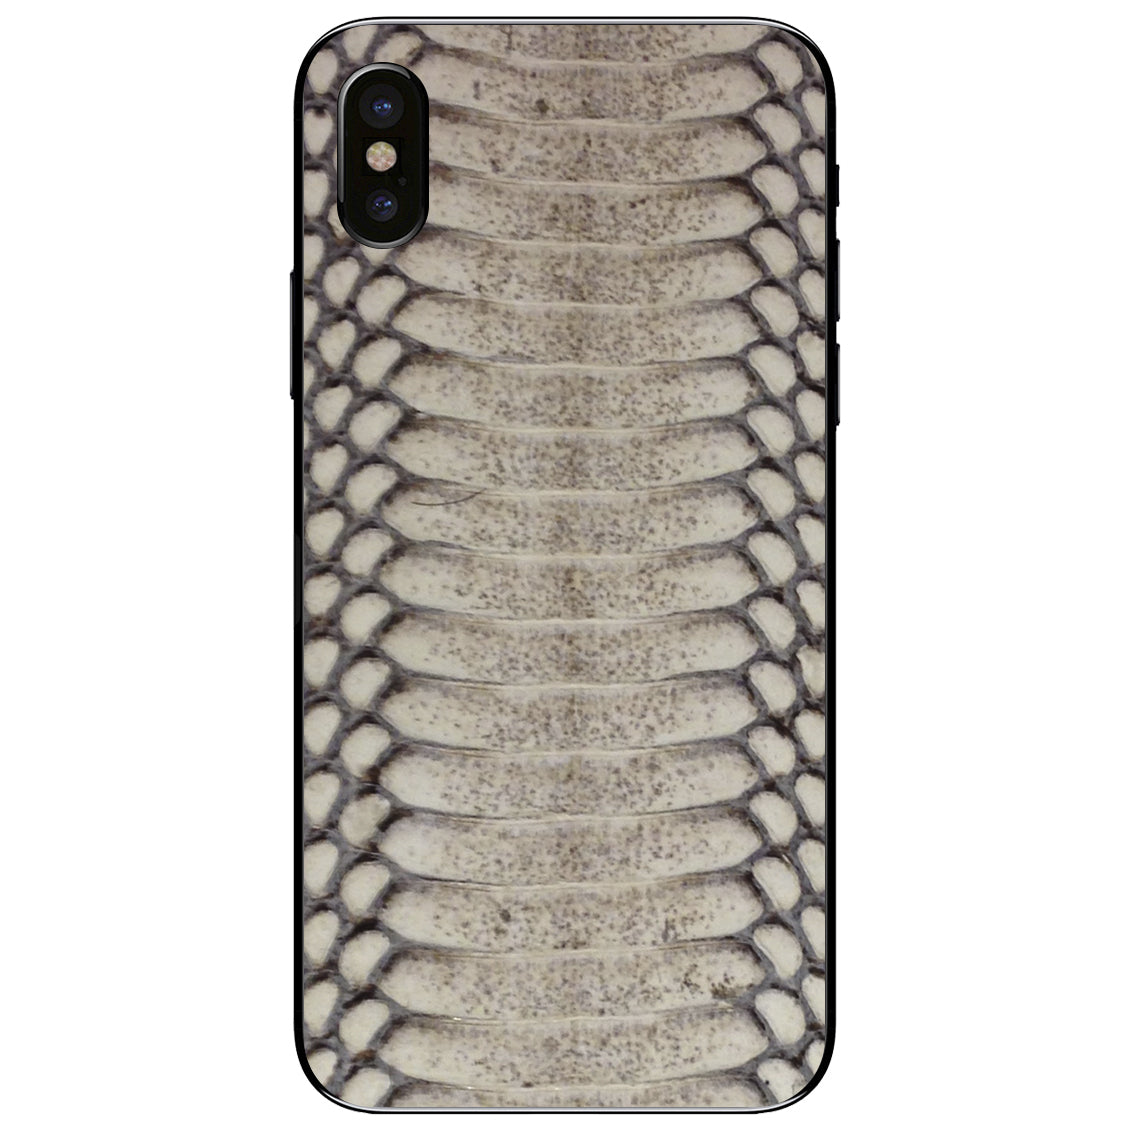 Cobra iPhone X Leather Skin